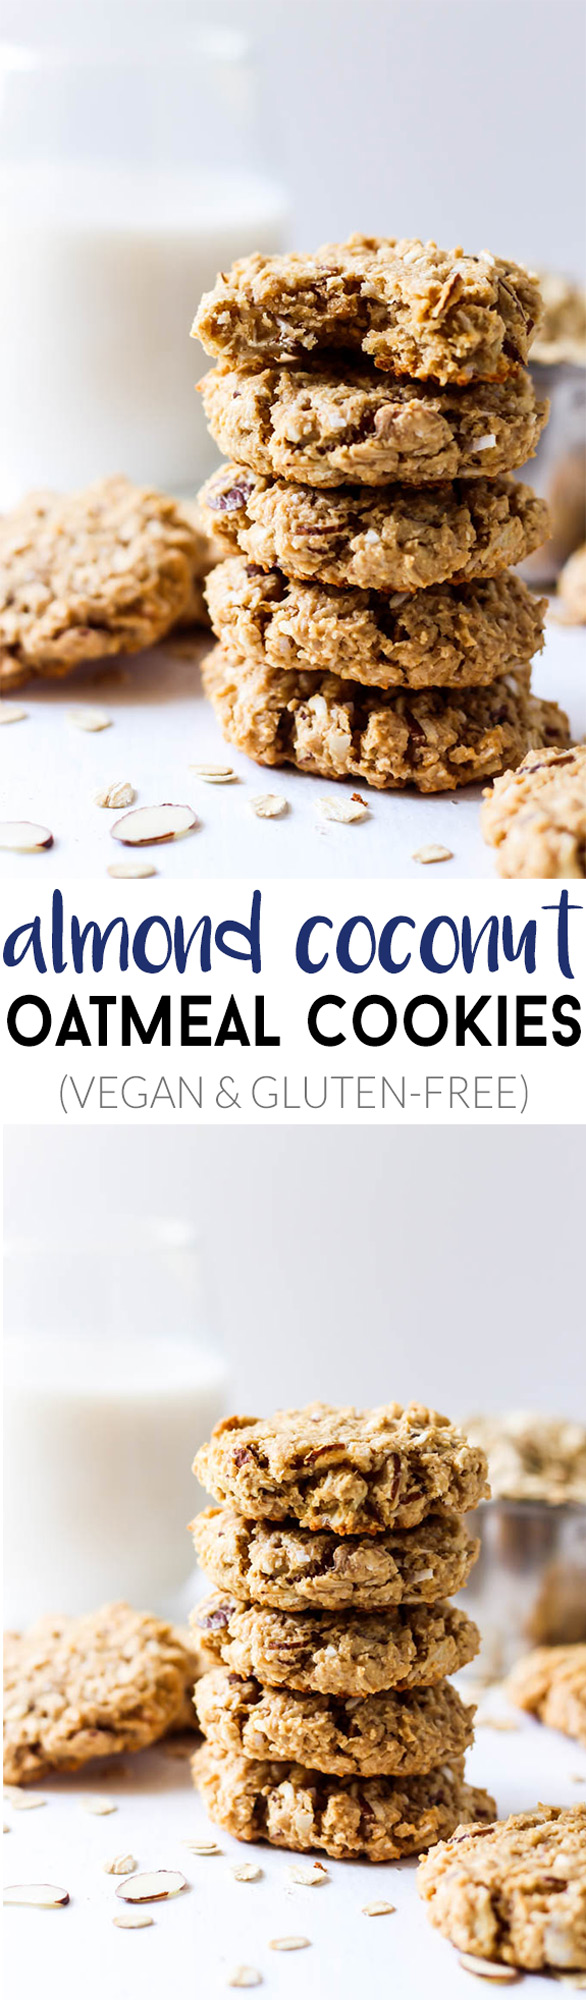 These Almond Coconut Oatmeal Cookies are healthy enough to eat for breakfast or a snack! They're deliciously soft, full of coconut & are vegan/gluten-free.